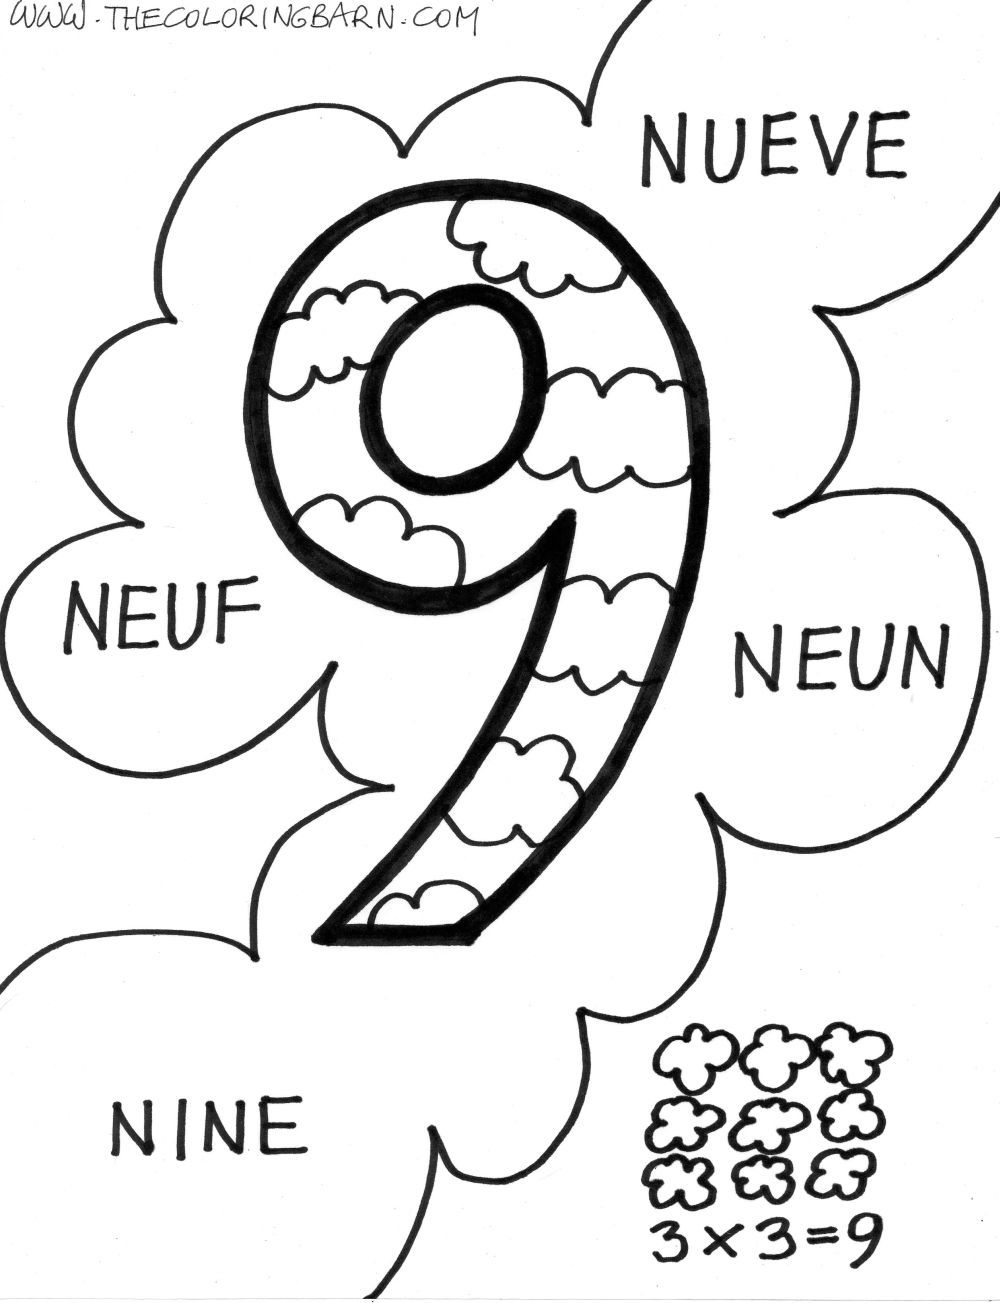 Google Image Result For Http Www Thecoloringbarn Com Wp Content Uploads 2010 Coloring Pages Letters And Numbers Number 9